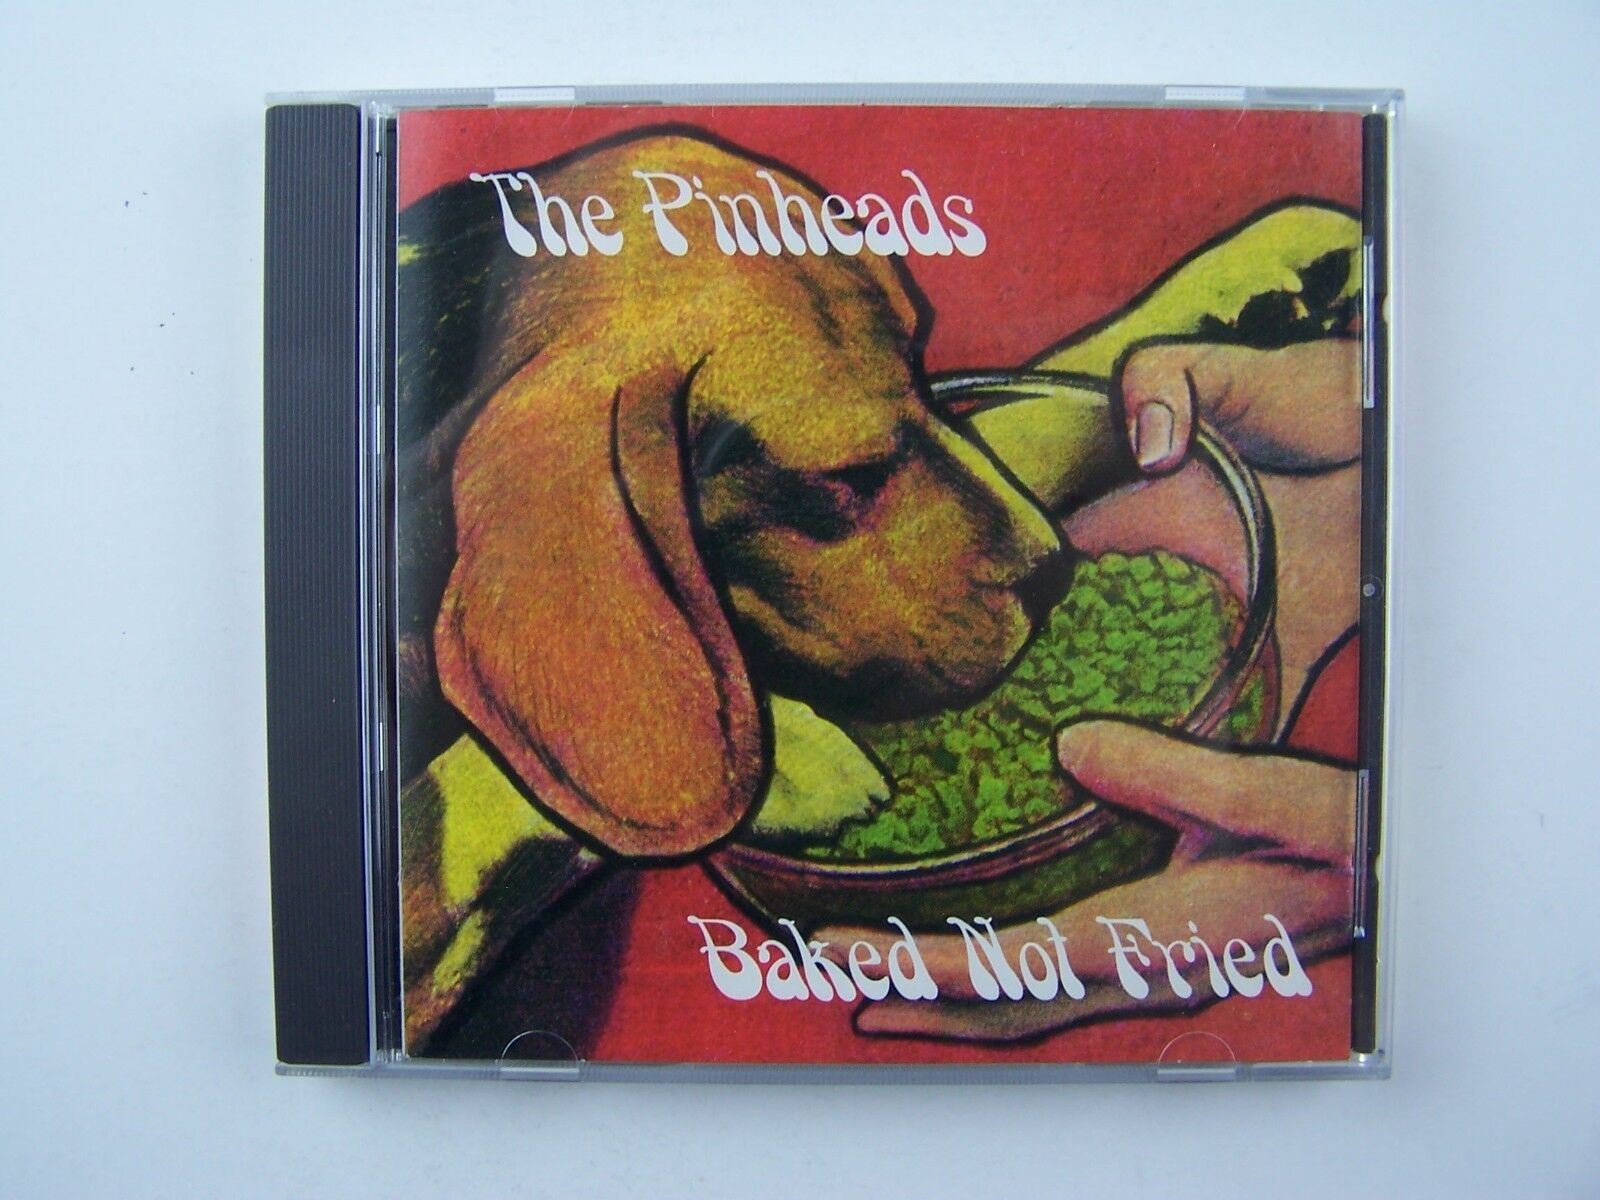 The Pinheads EP - Baked Not Fried CD Hard Rock Psychede